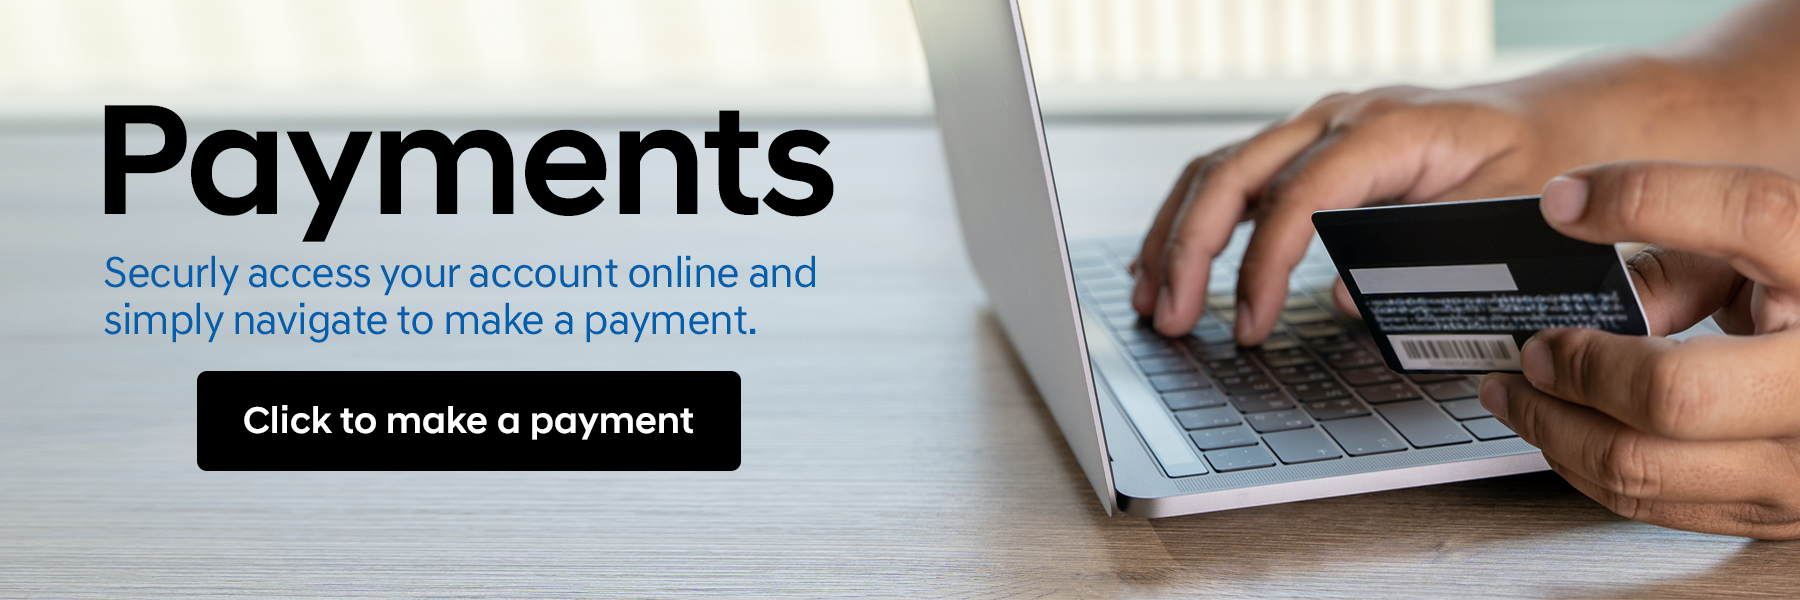 Payments_online